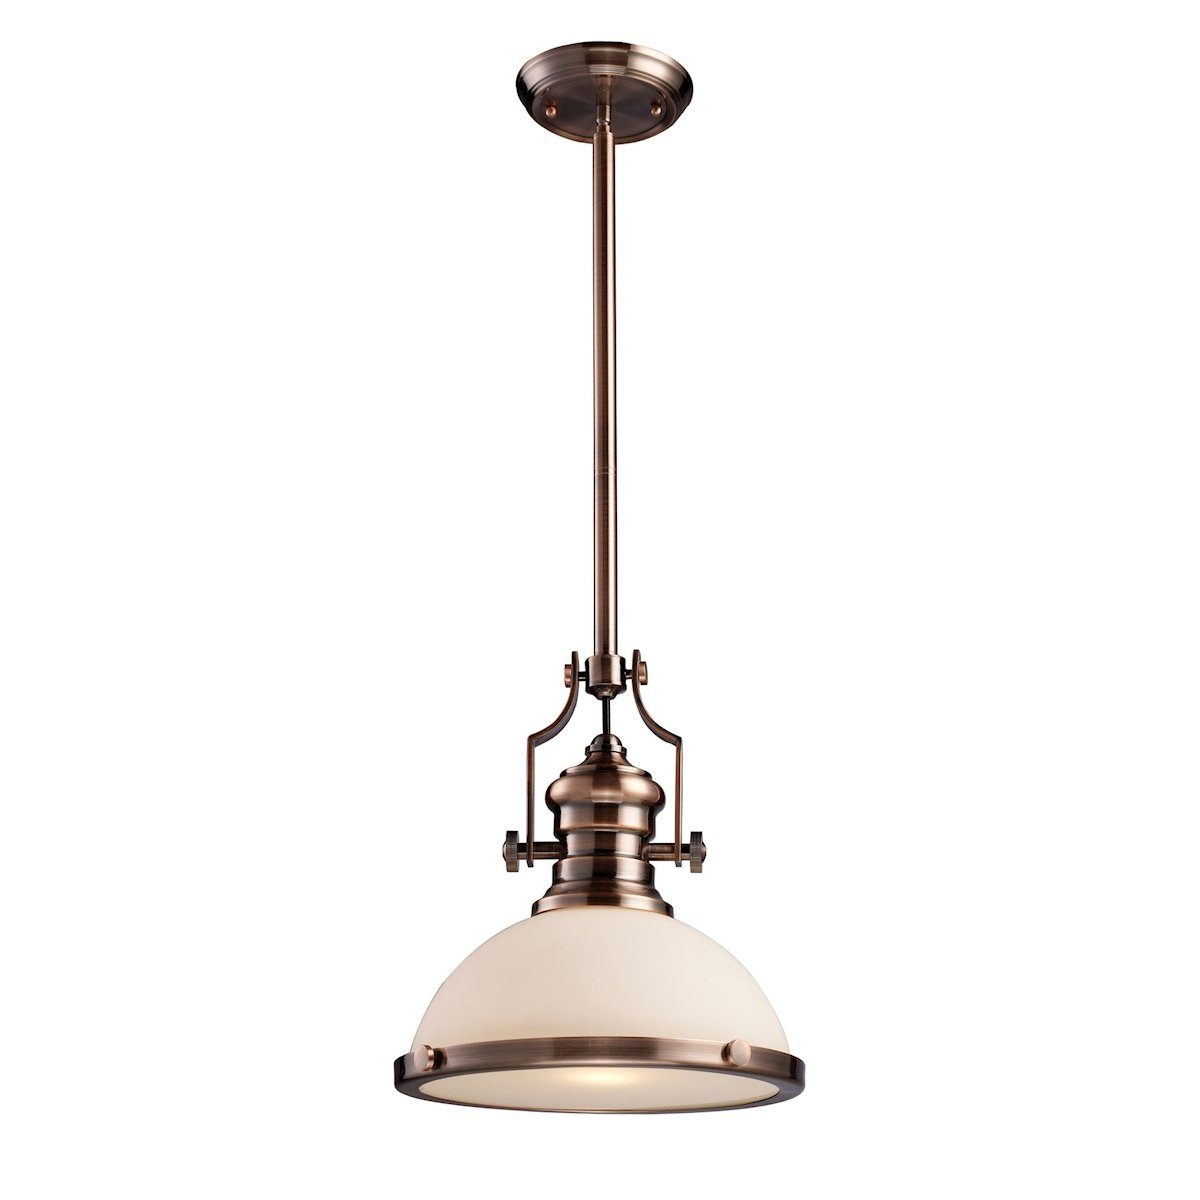 Chadwick 1 Light Pendant In Antique Copper And White Glass Ceiling Elk Lighting